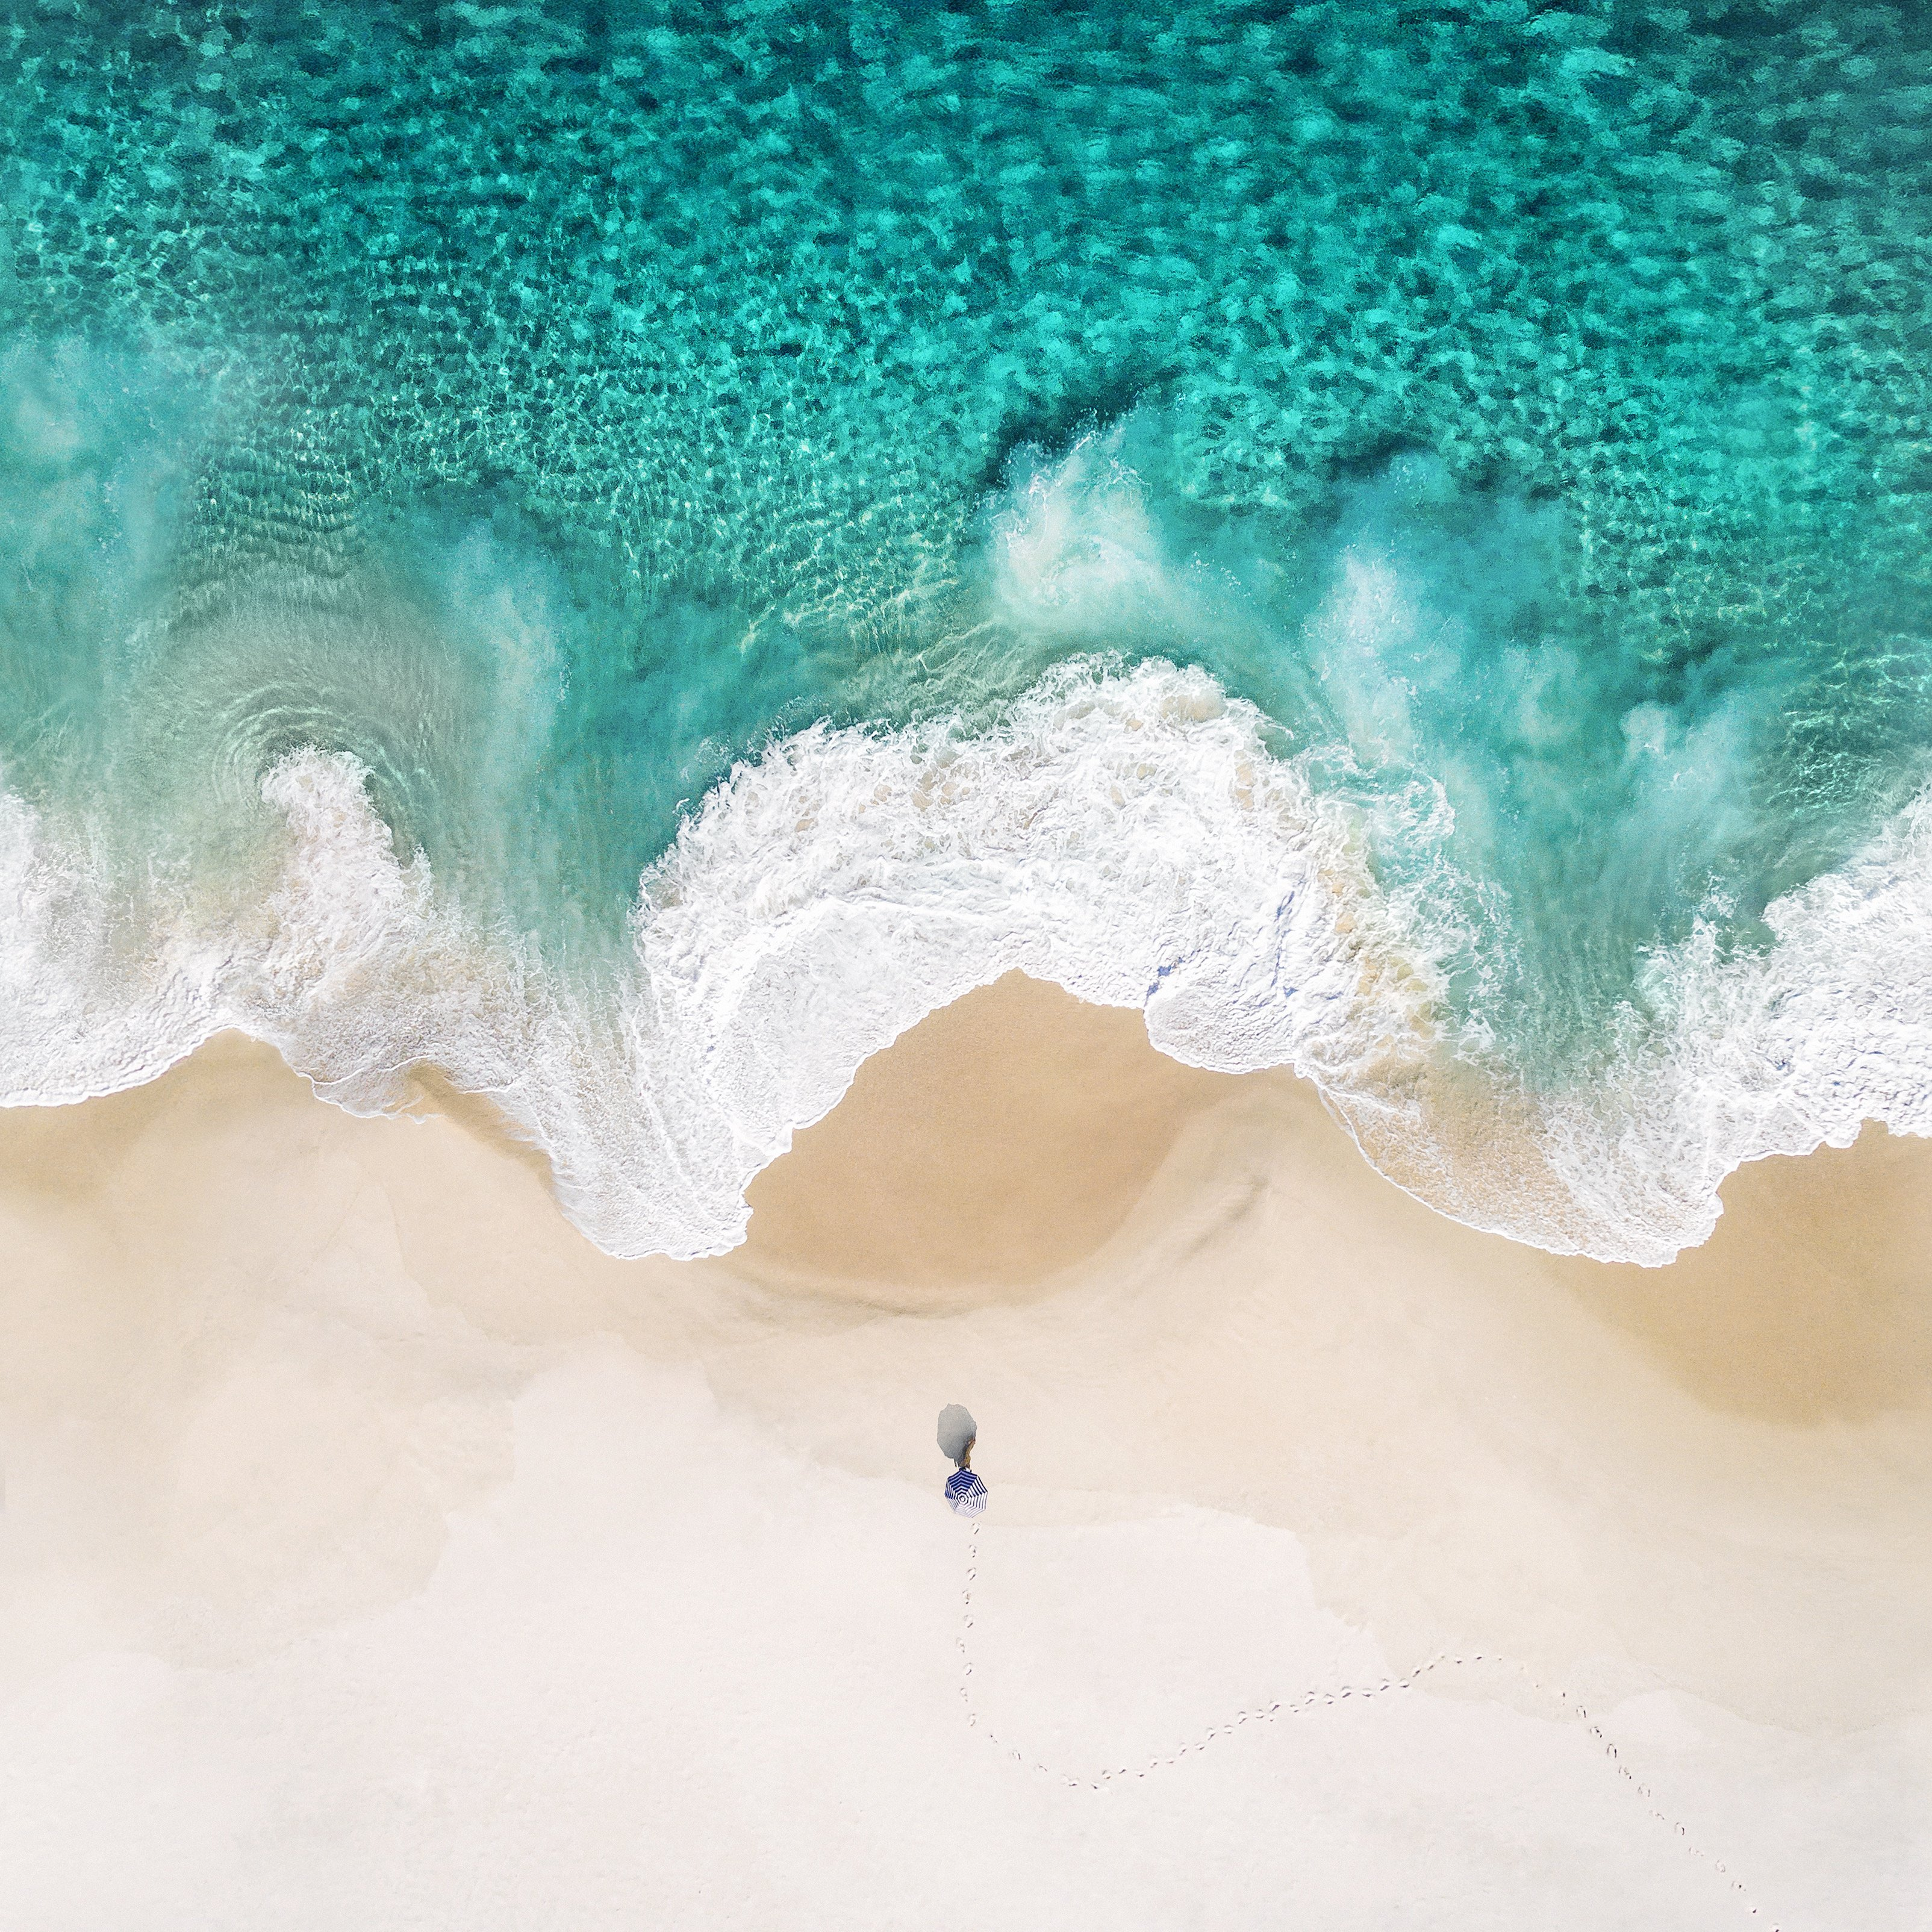 100 Seriously Awesome Ipad Pro Wallpapers Ipadable